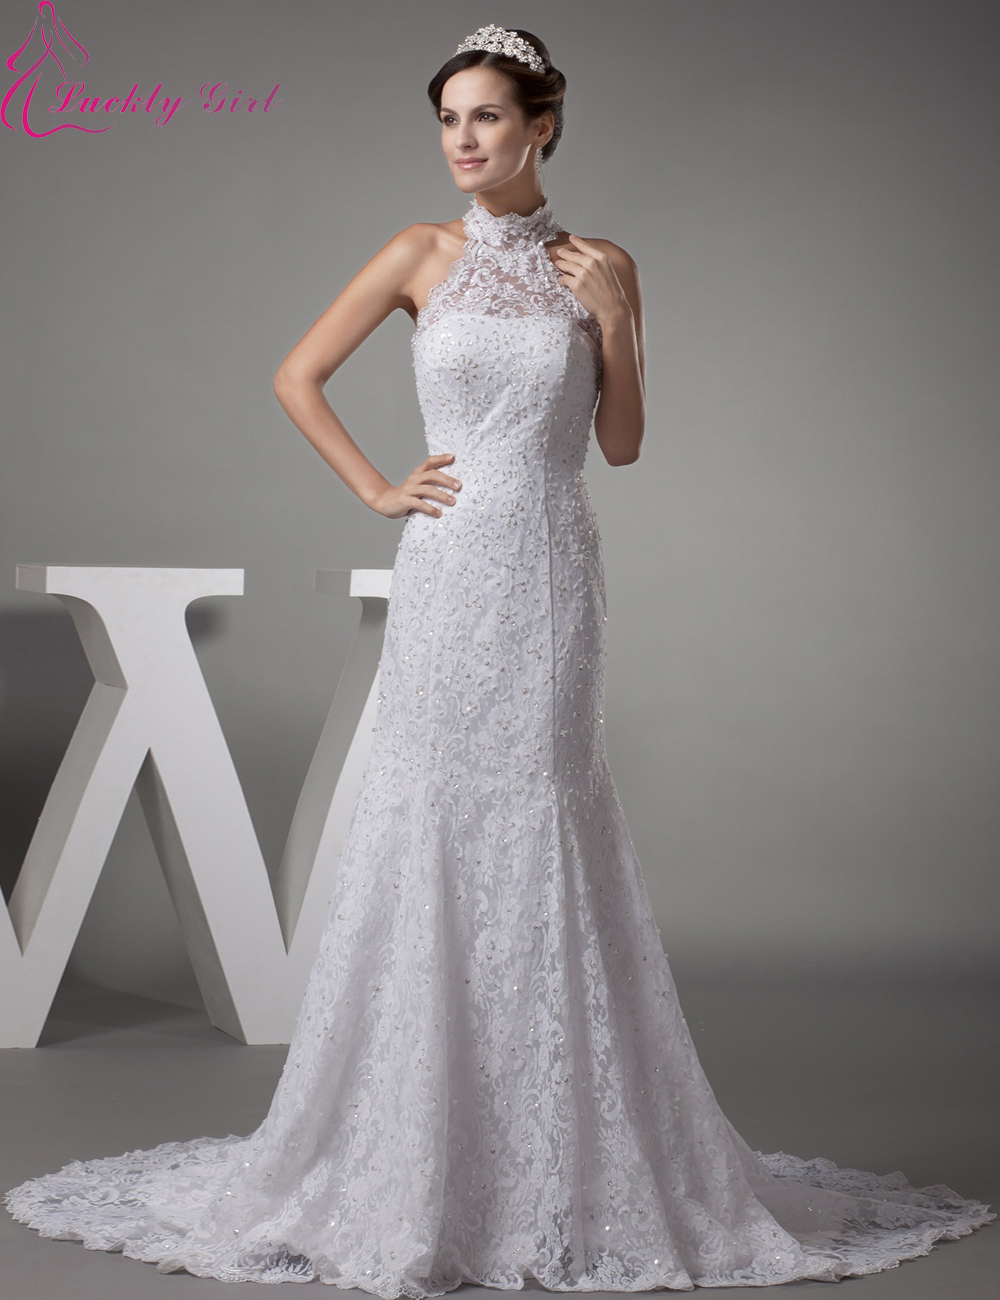 2015 New Vintage Wedding Dress High Neck Sweetheart Beading High Quality Mermaid Wedding Dress